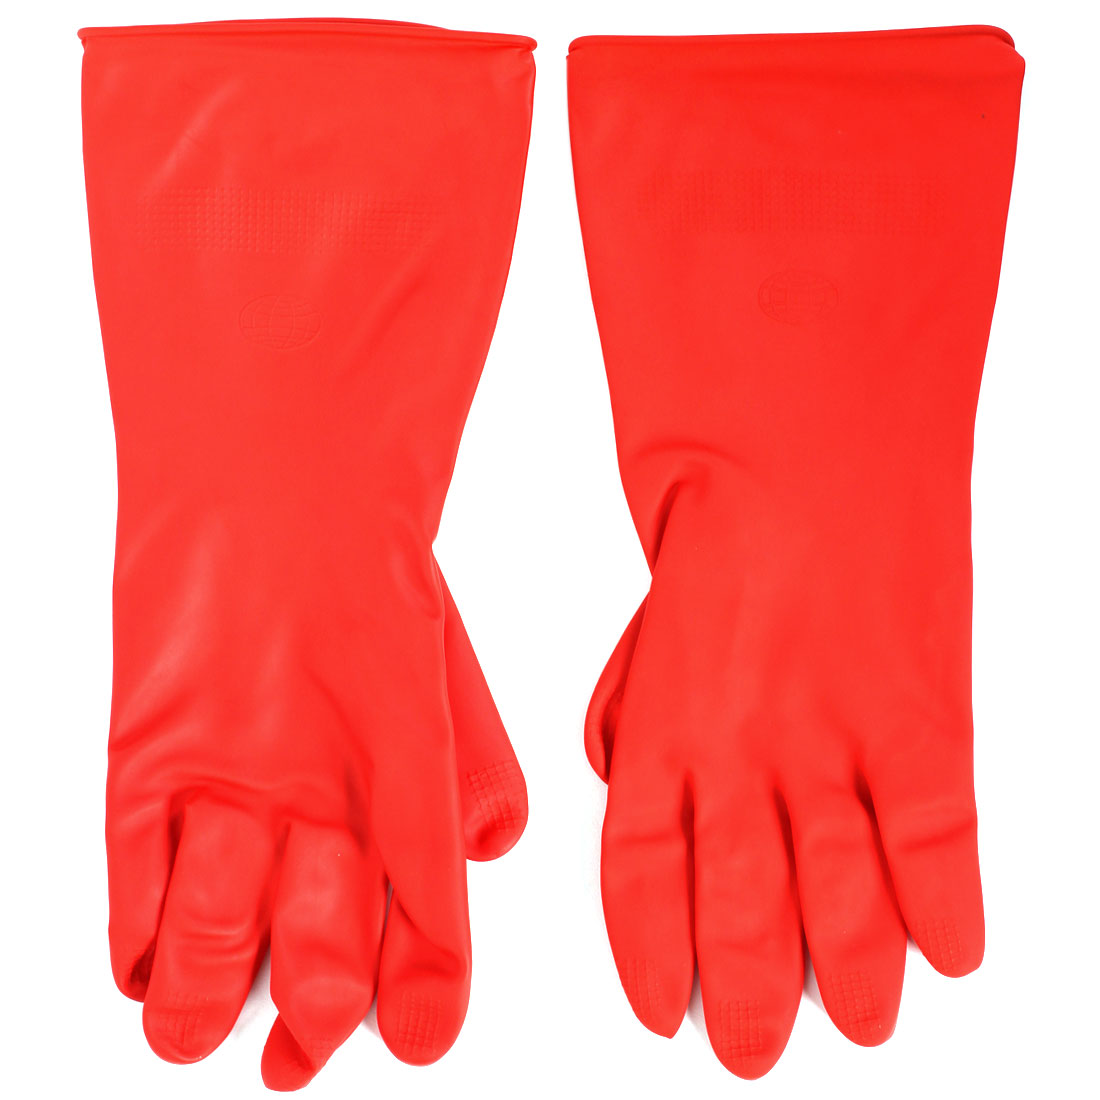 Factory Oil Resistant Waterproof Hand Protector Rubber Work Gloves Red Pair